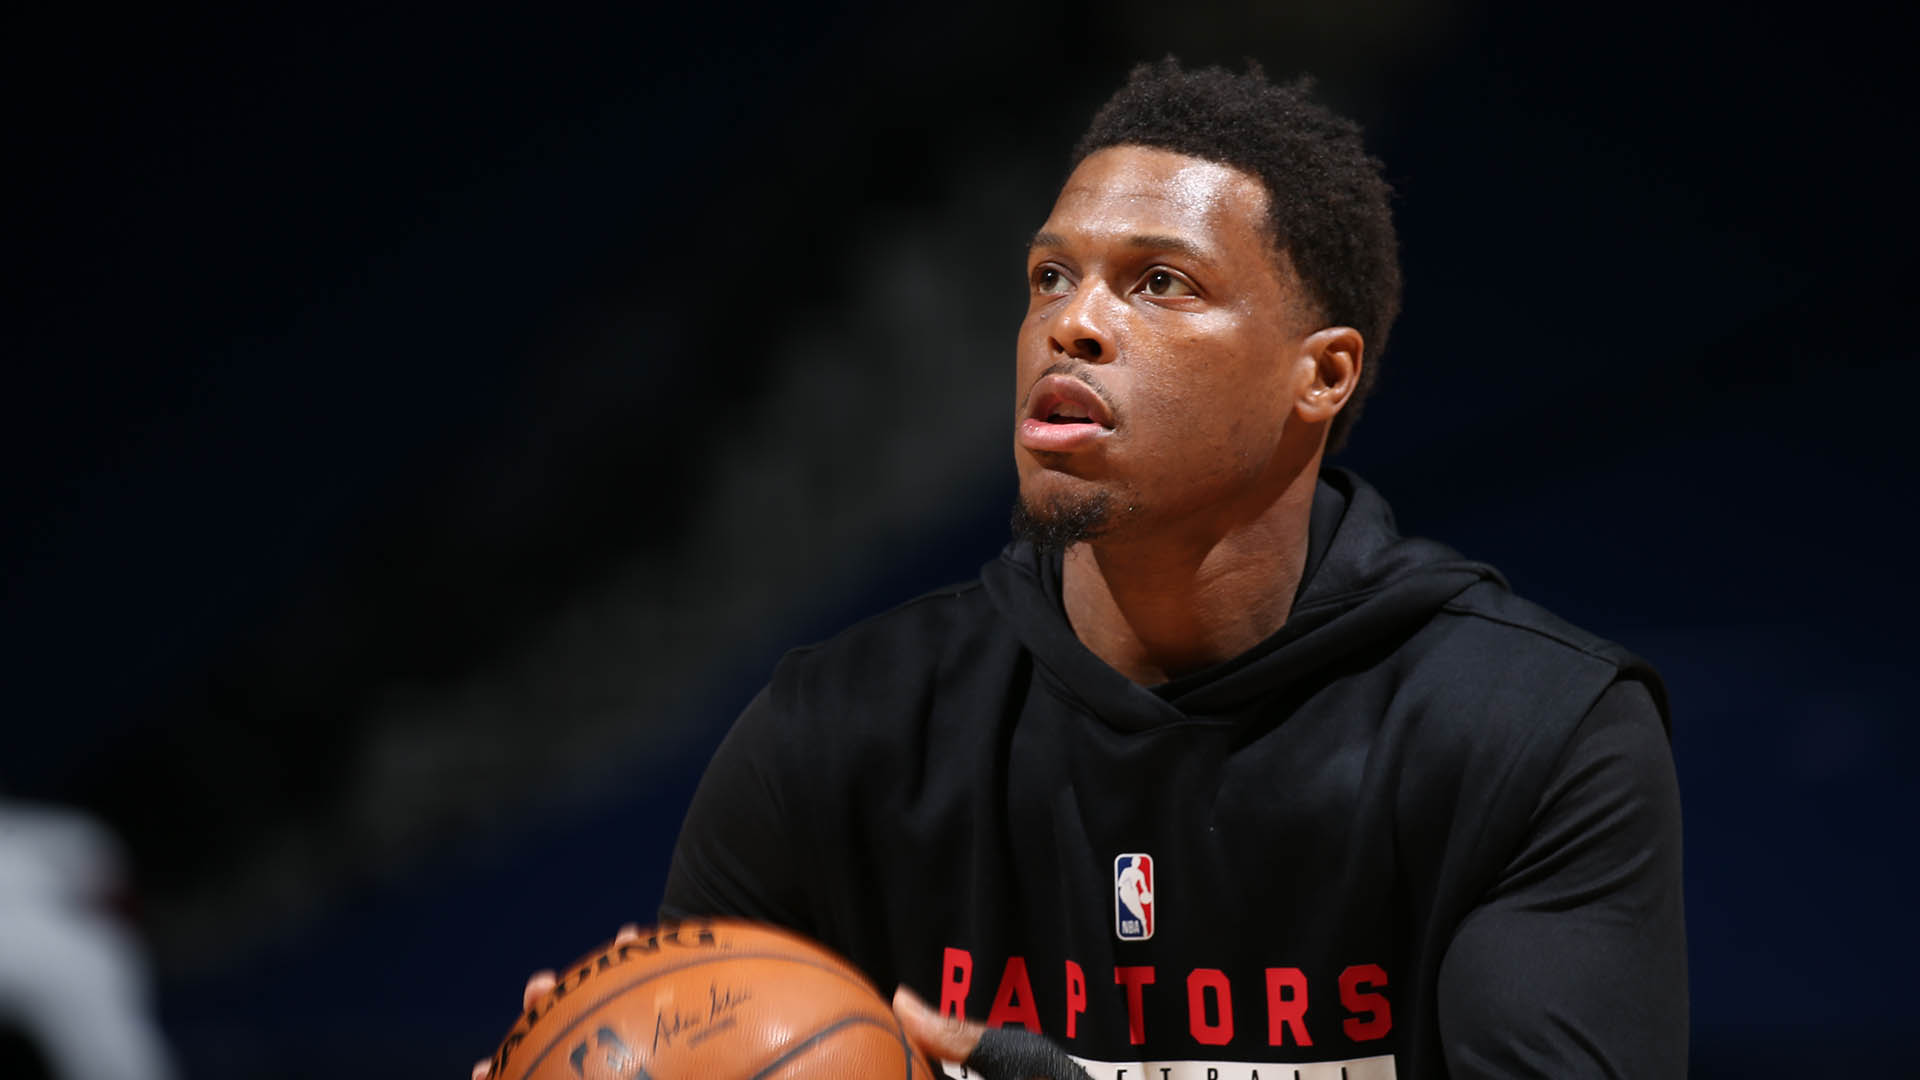 Raptors opt to not trade star guard Kyle Lowry